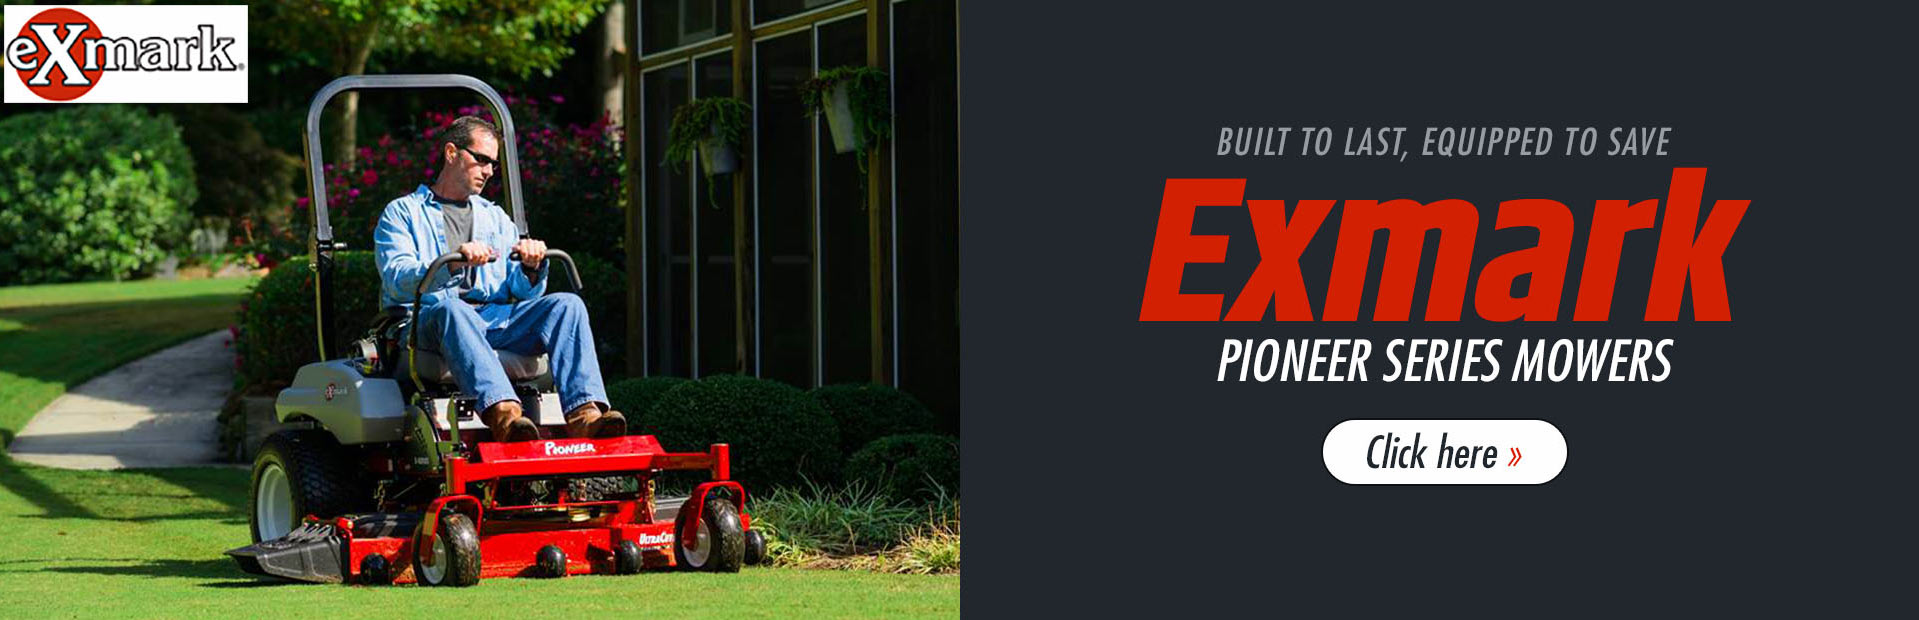 Click here to view our selection of Exmark Pioneer series mowers!